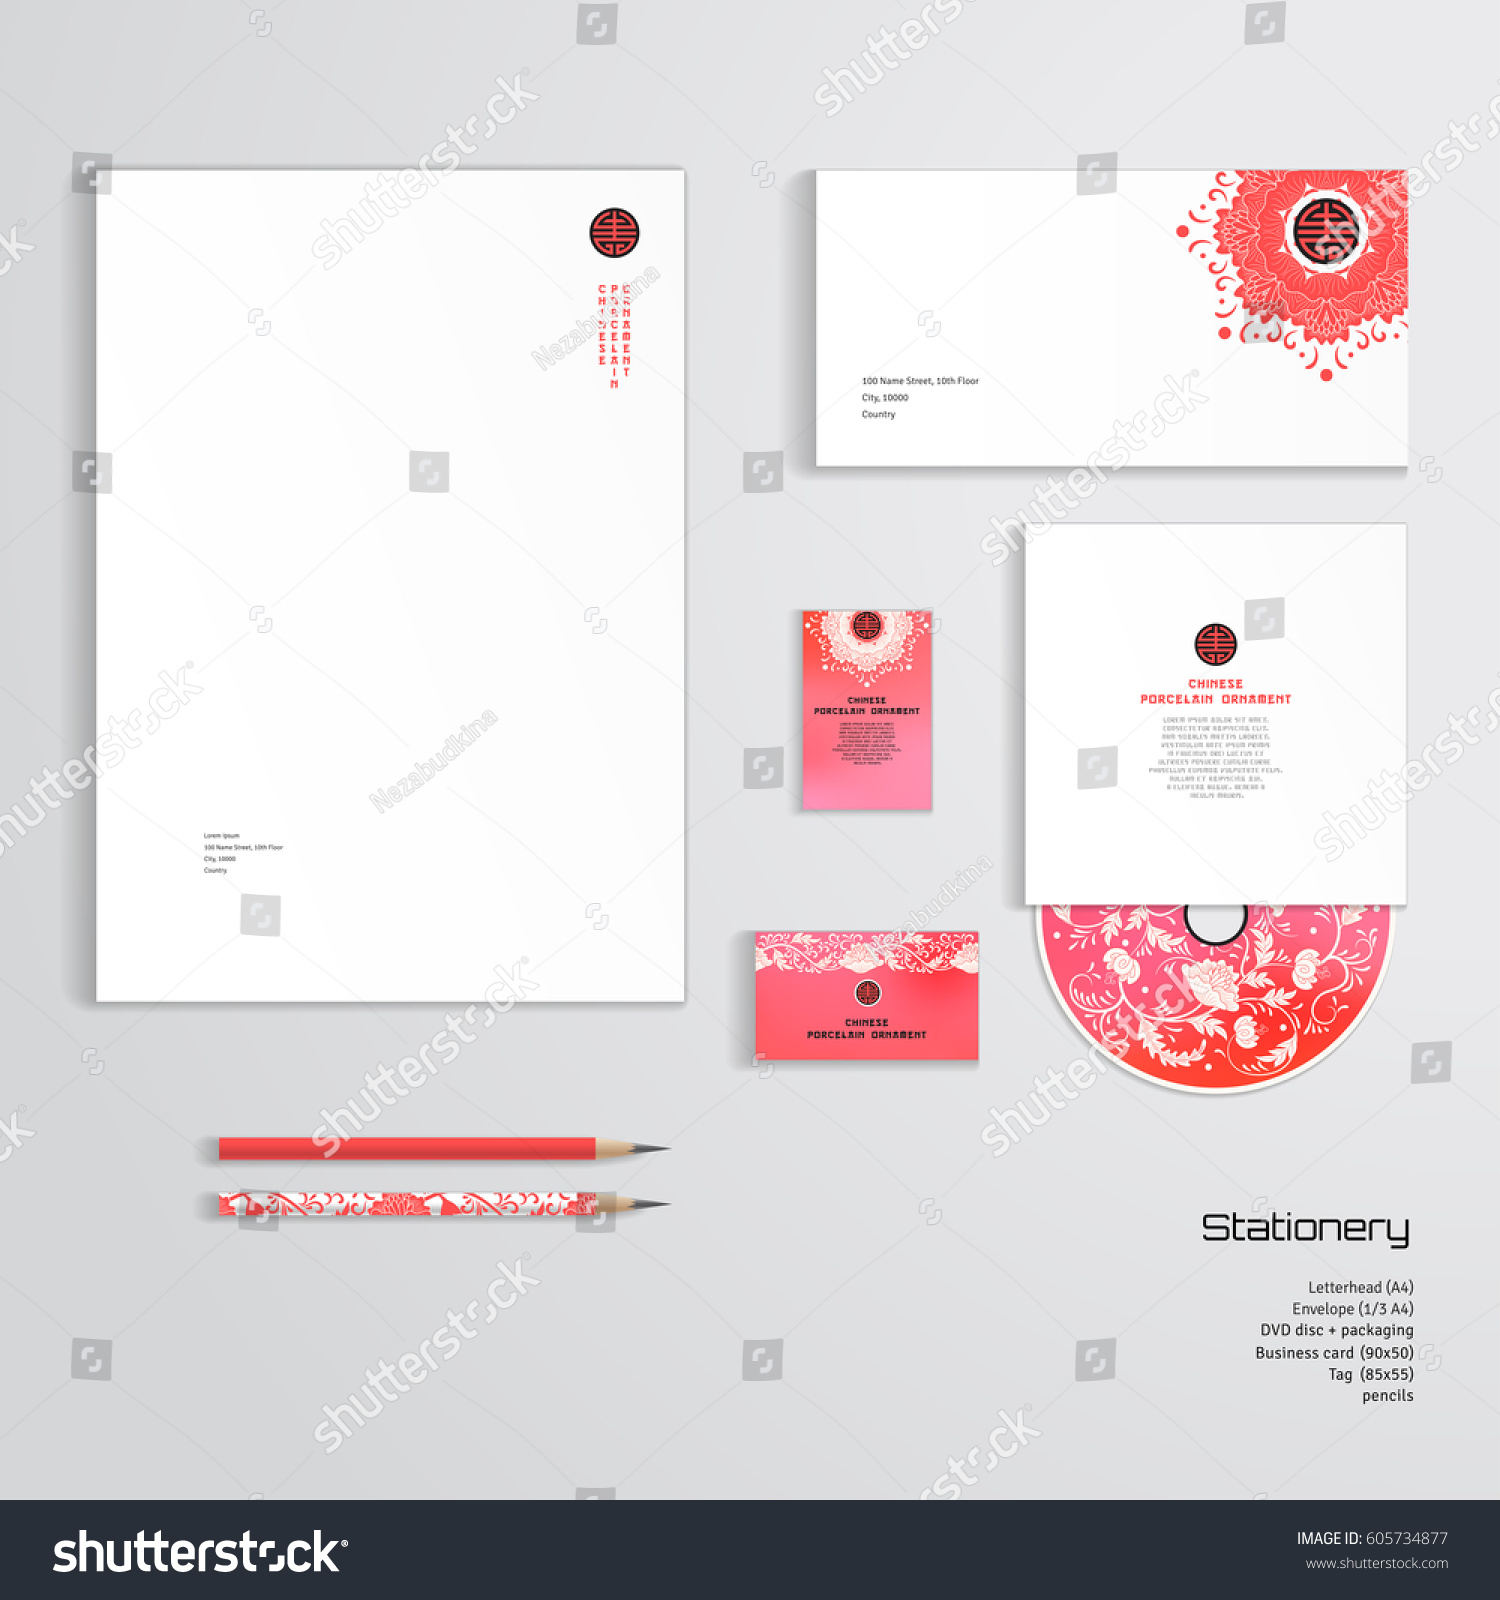 Vector identity templates letterhead envelope business stock vector vector identity templates letterhead envelope business card tag disc with packaging cheaphphosting Image collections